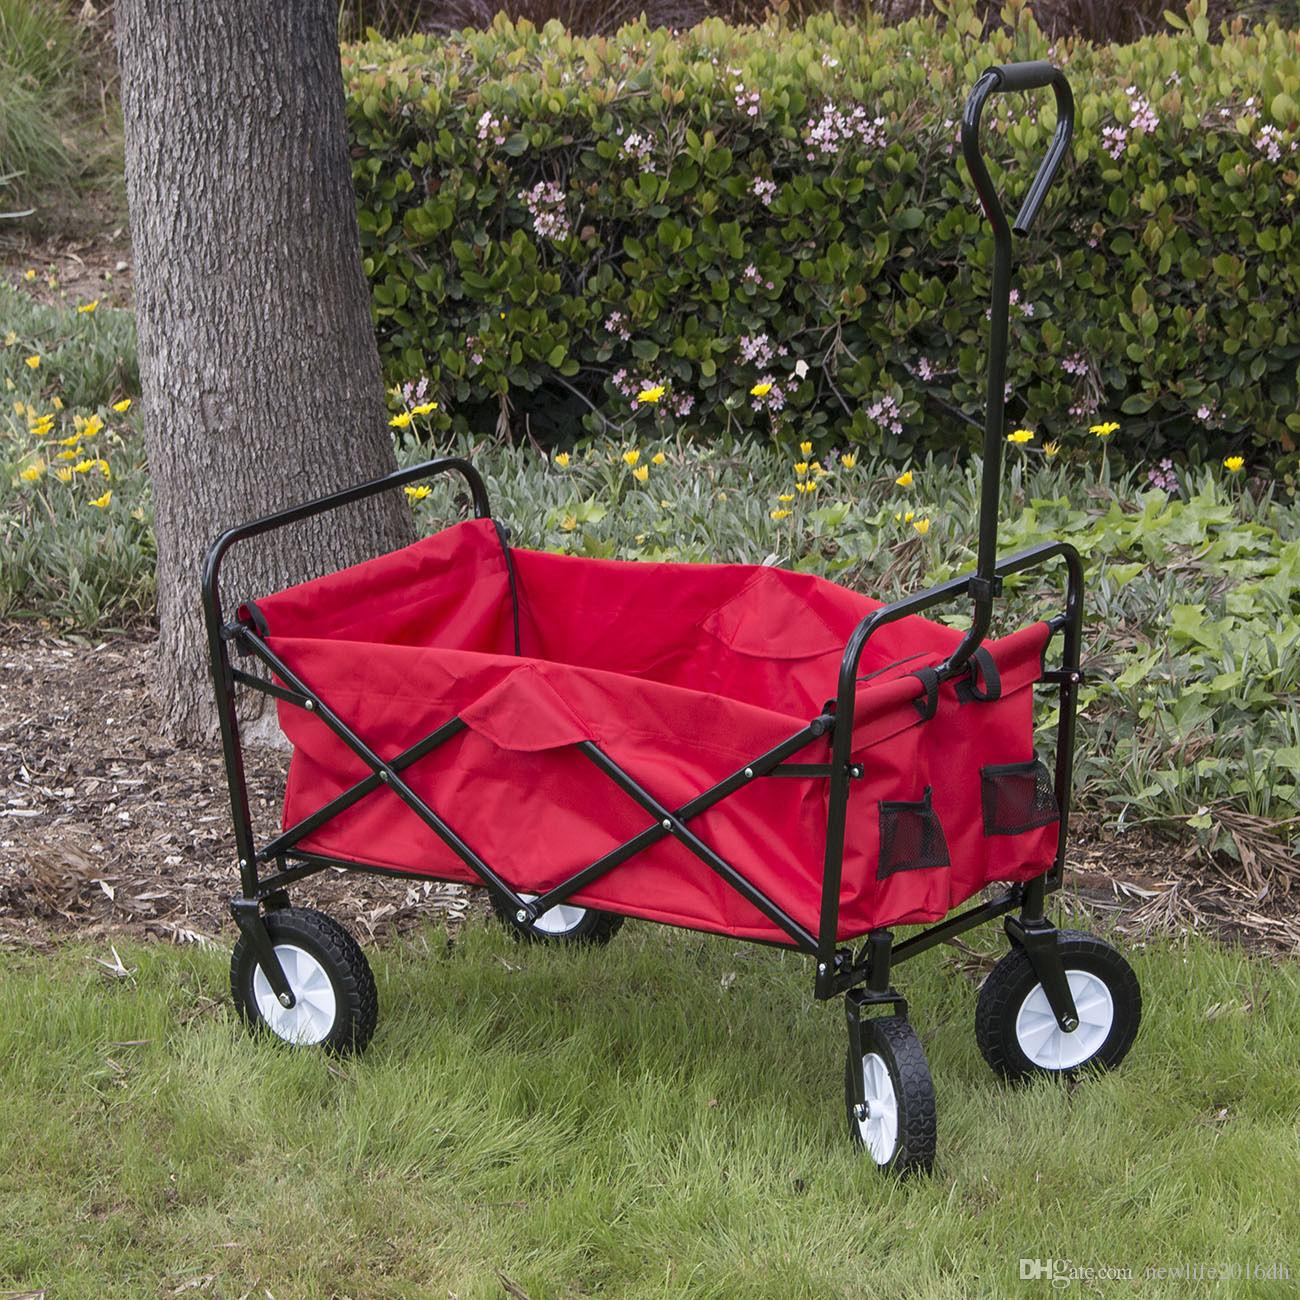 Wonderful Online Cheap Folding Utility Wagon Collapsible Garden Cart Shopping Beach  Toy Sports Cart Red By Newlife2016dh | Dhgate.Com